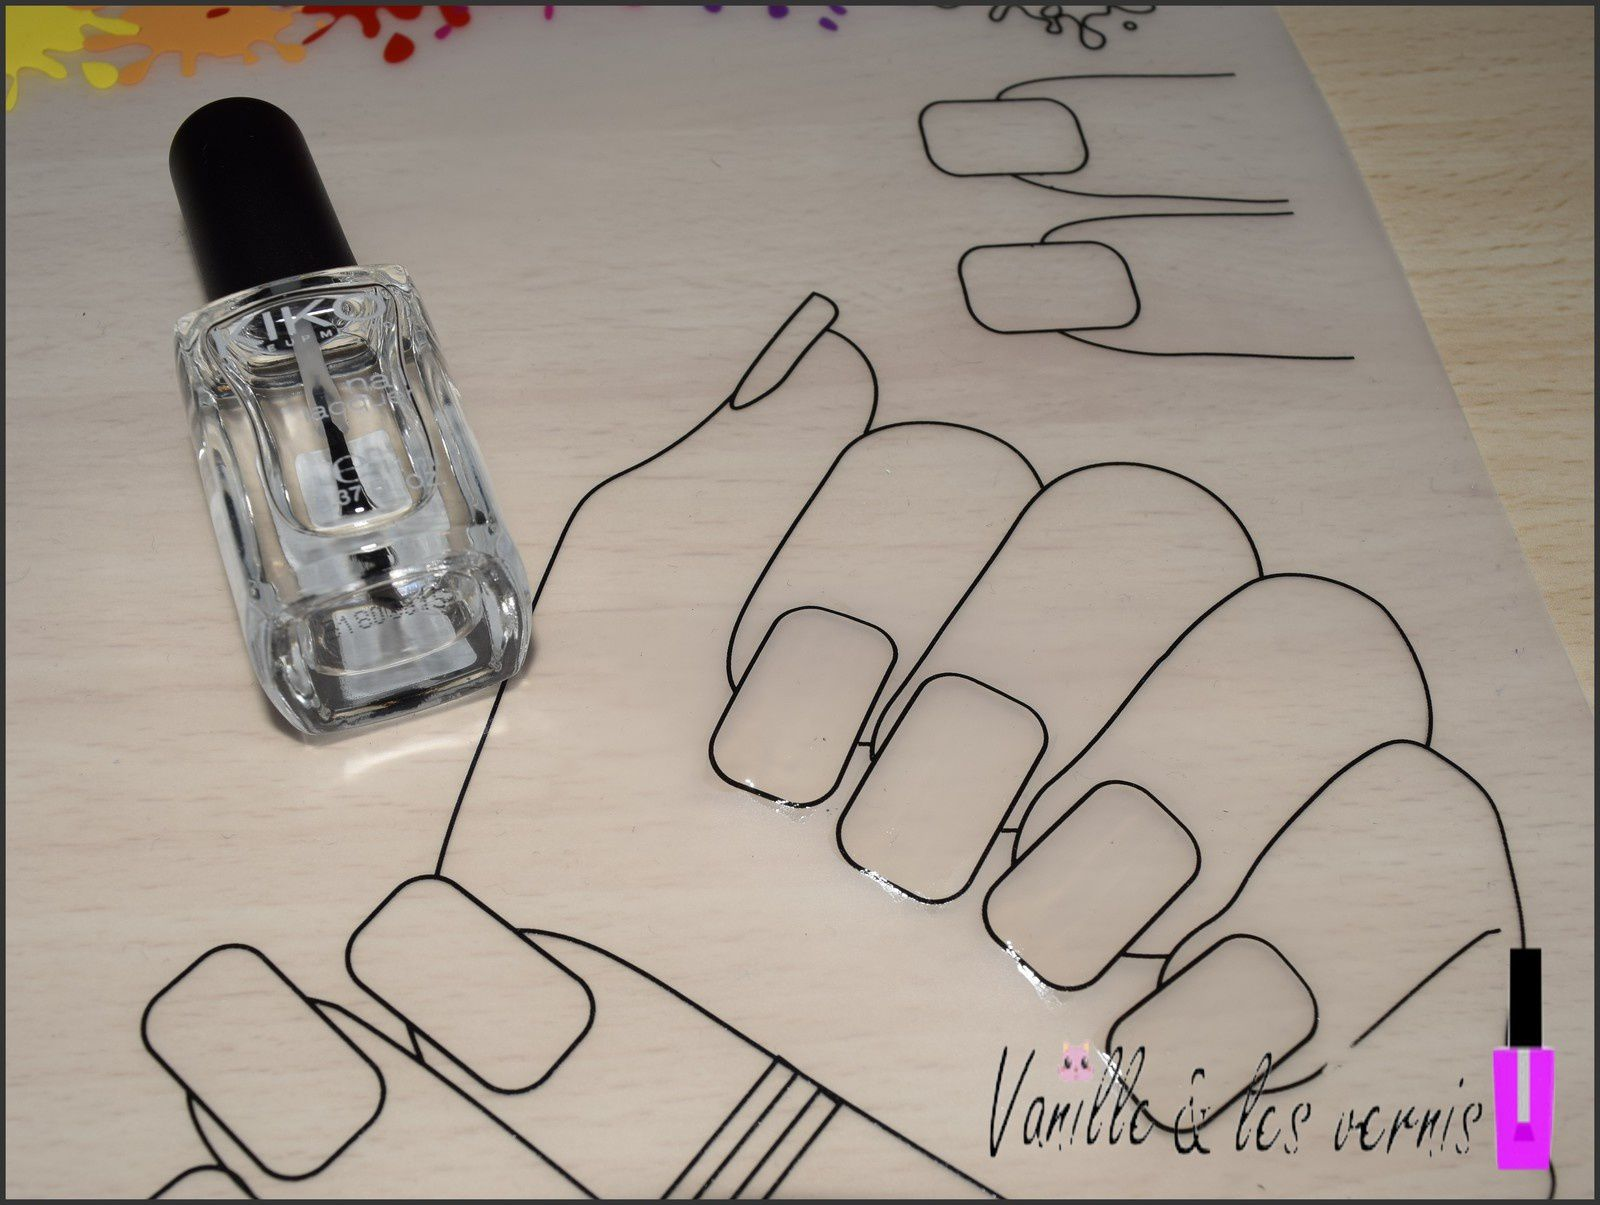 on pose le vernis transparent